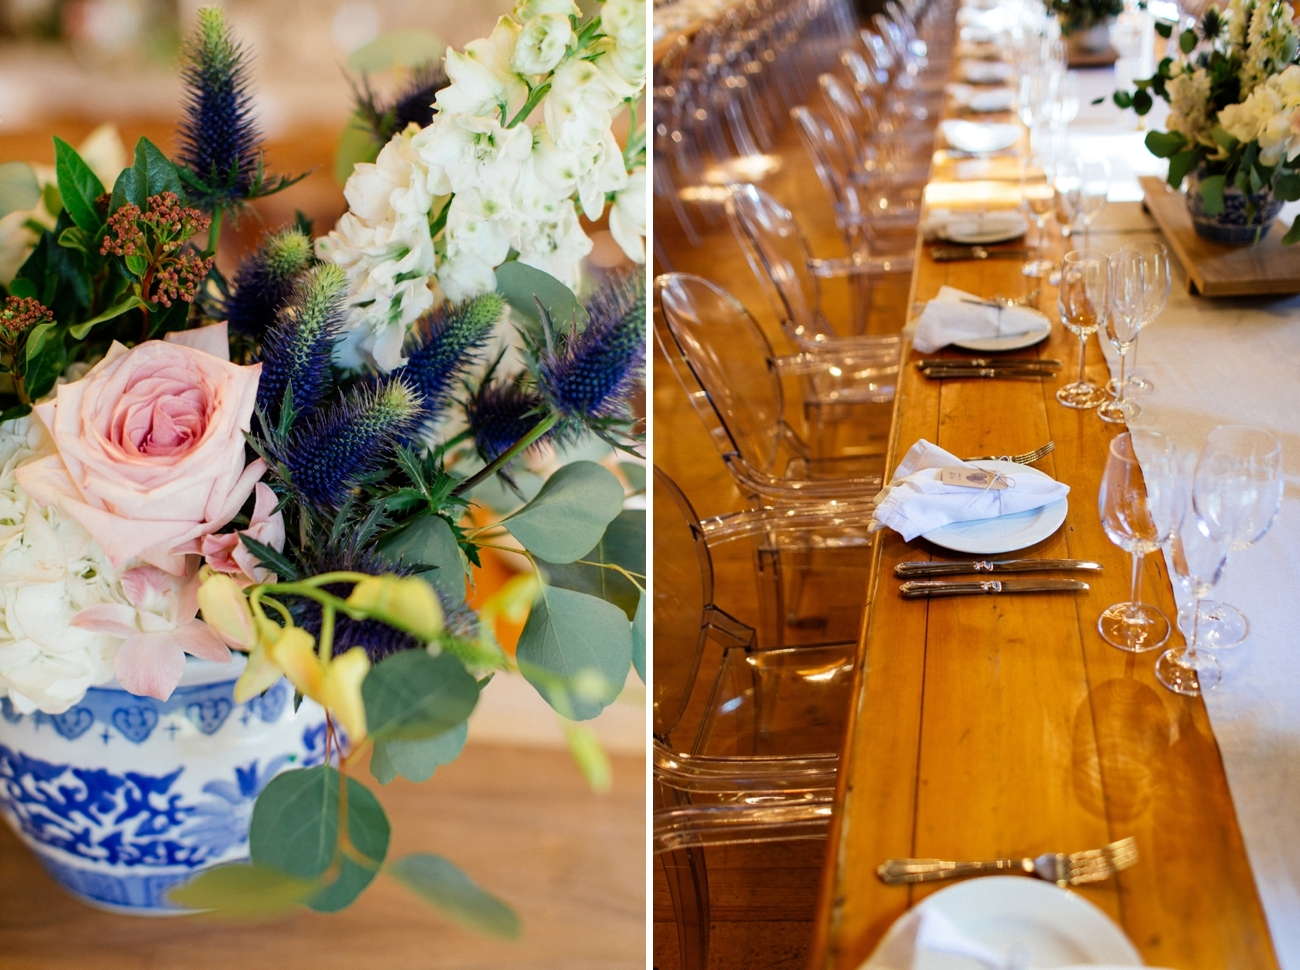 Pretty Rustic Wedding with a Touch of Delft | Images: Marli Koen